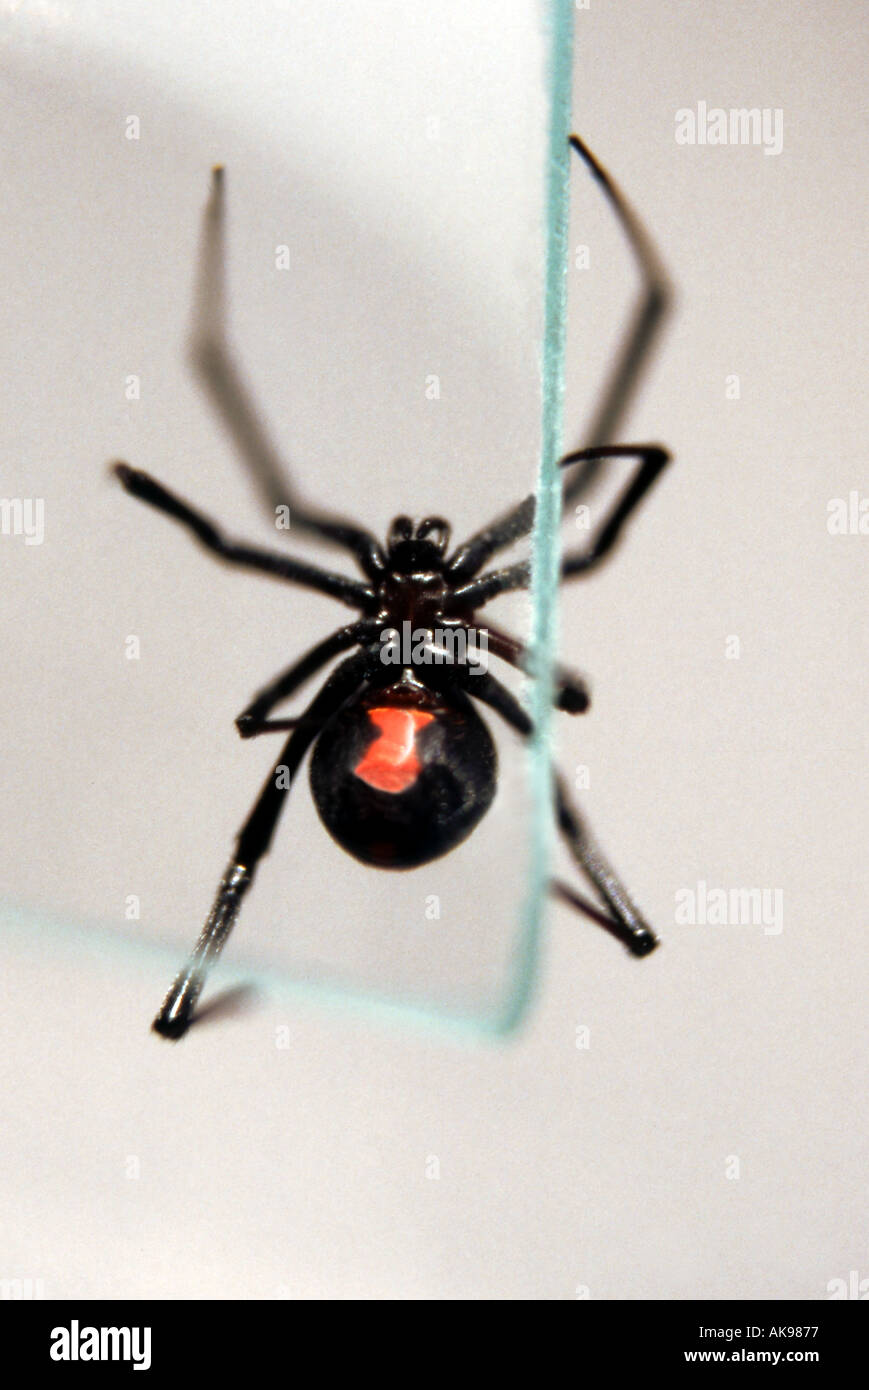 Black Widow Spider with red hourglass on stomach  climbing glass Stock Photo